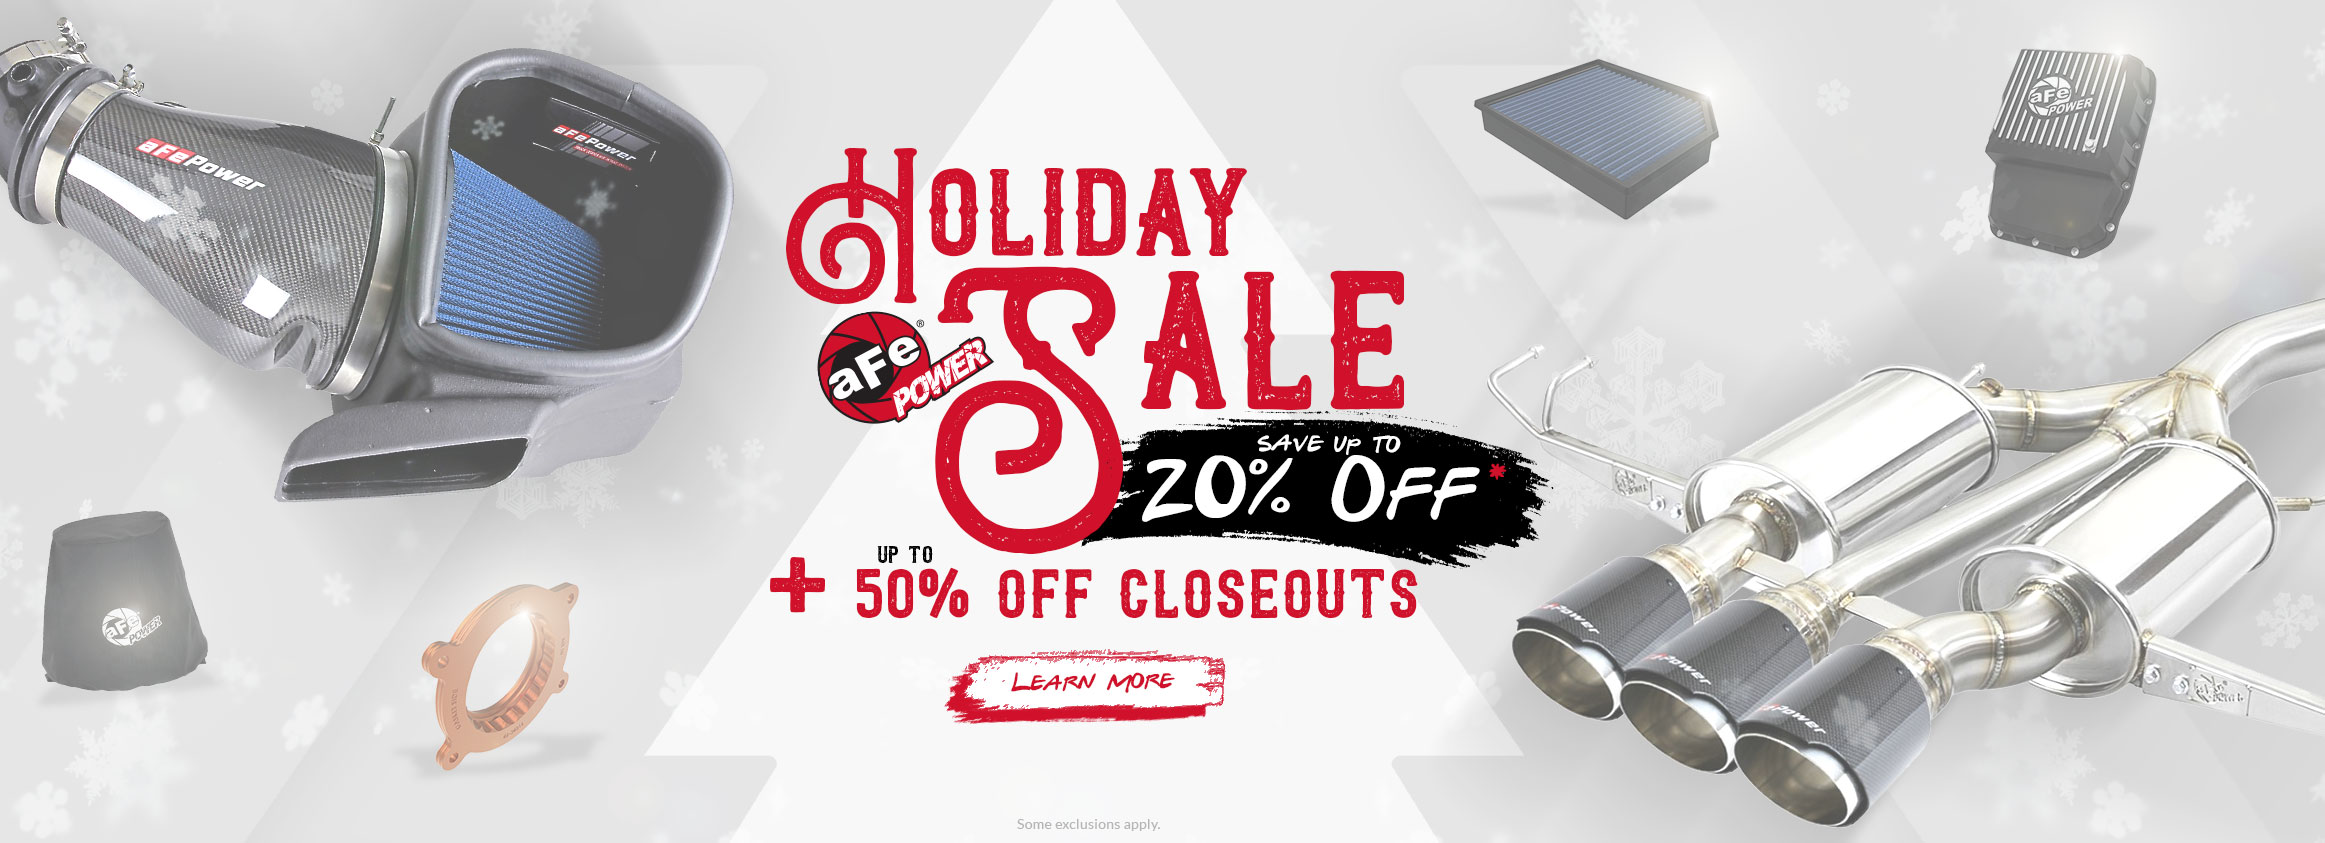 Our Holiday Sale Starts Now! - Up To 20% OFF + 50% OFF Closeouts!